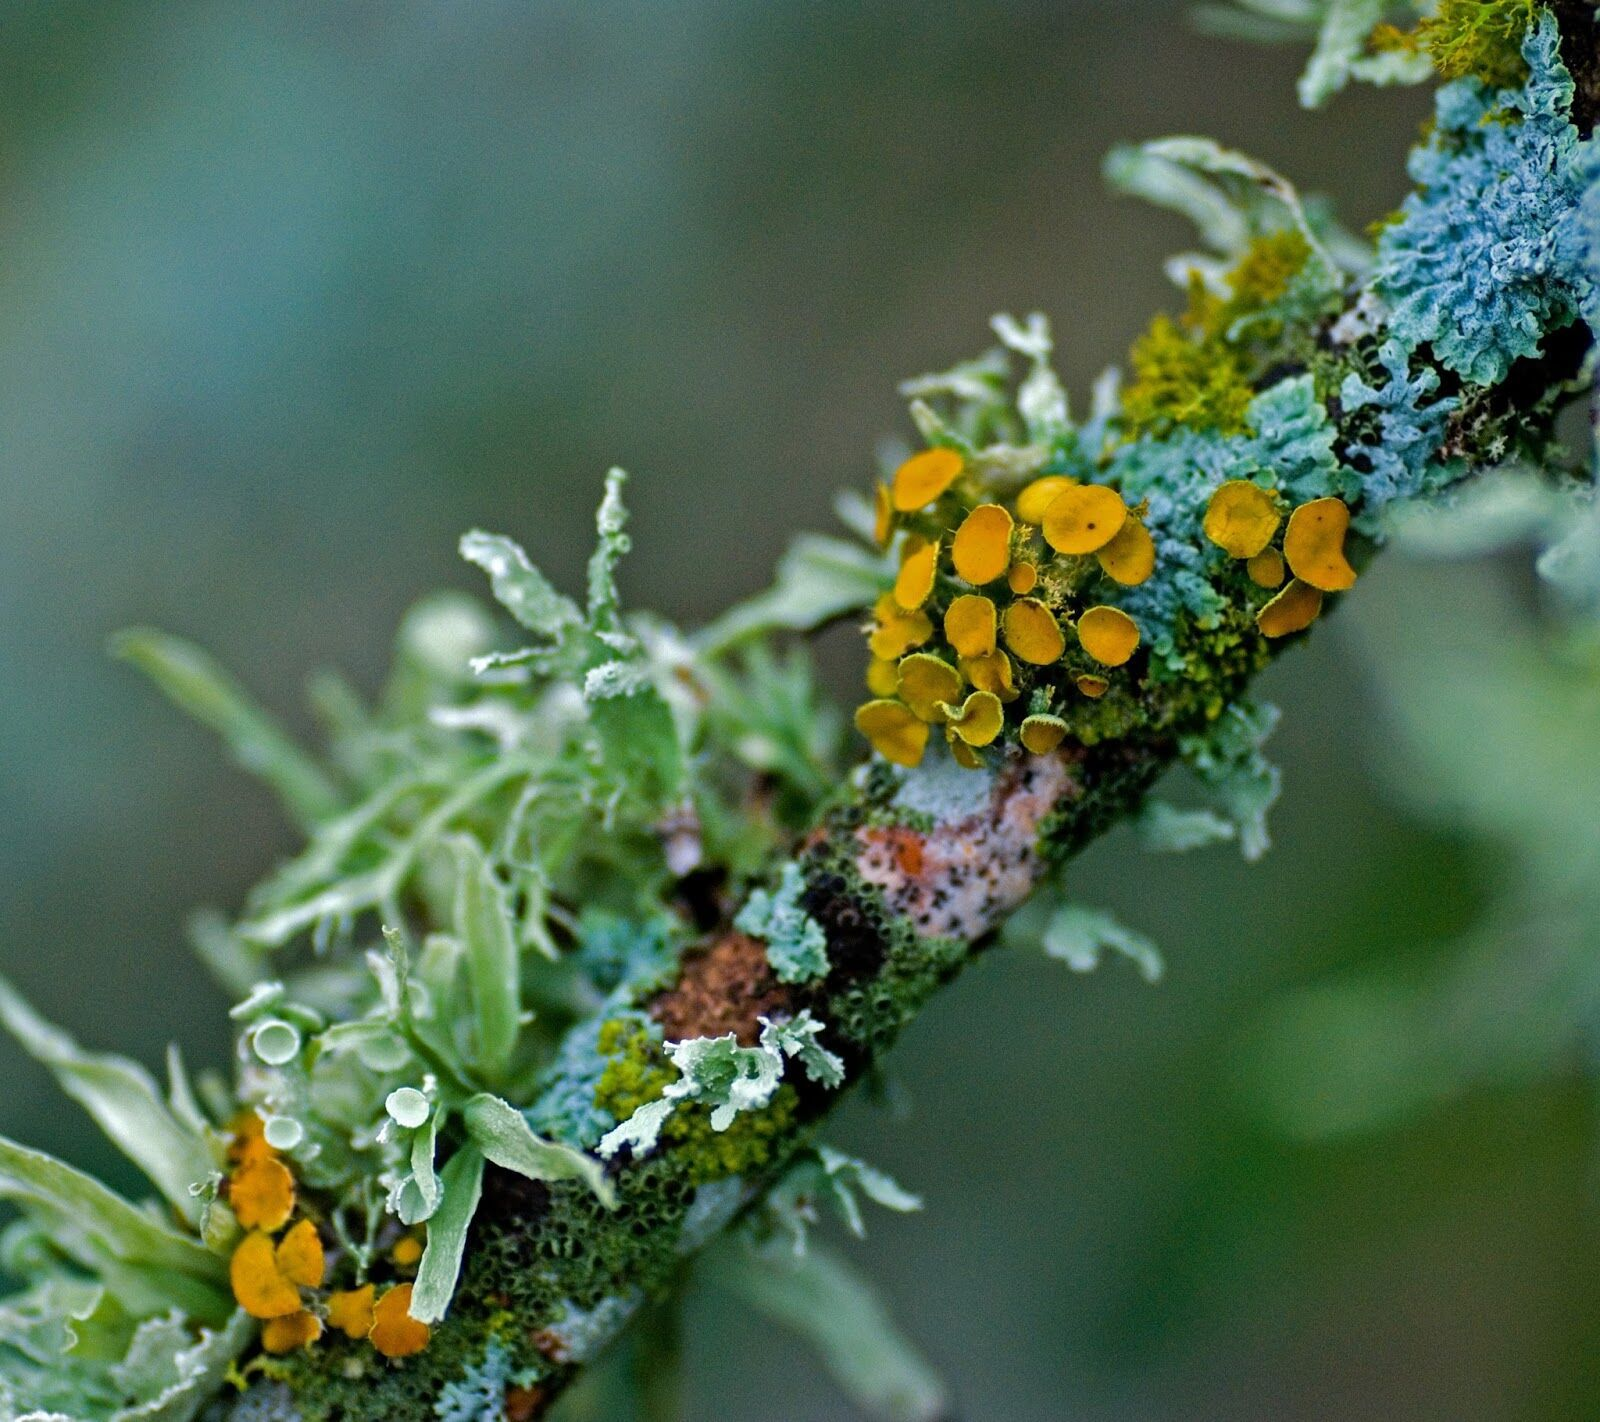 Photo of lichen on a twig